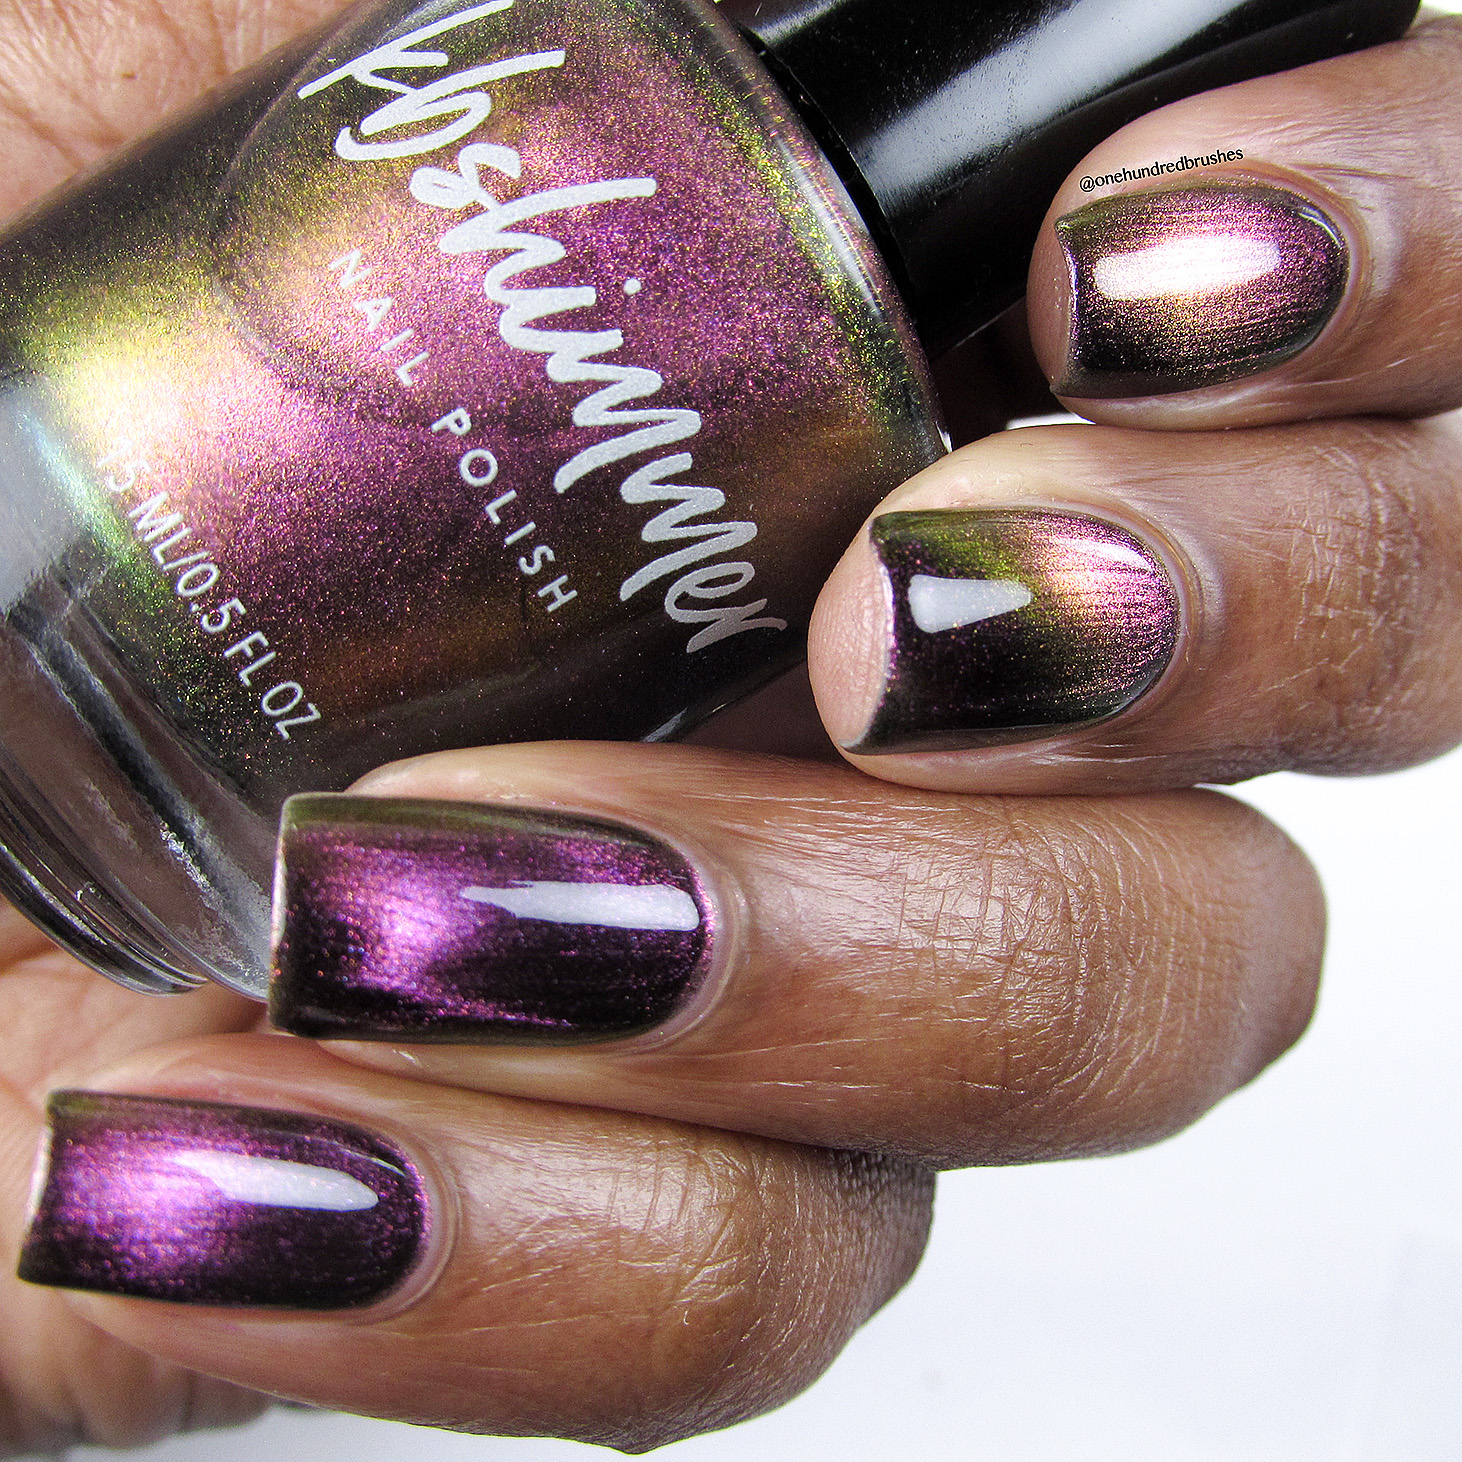 KBShimmer Just A Phase Multichrome Magnetic Nail Polish